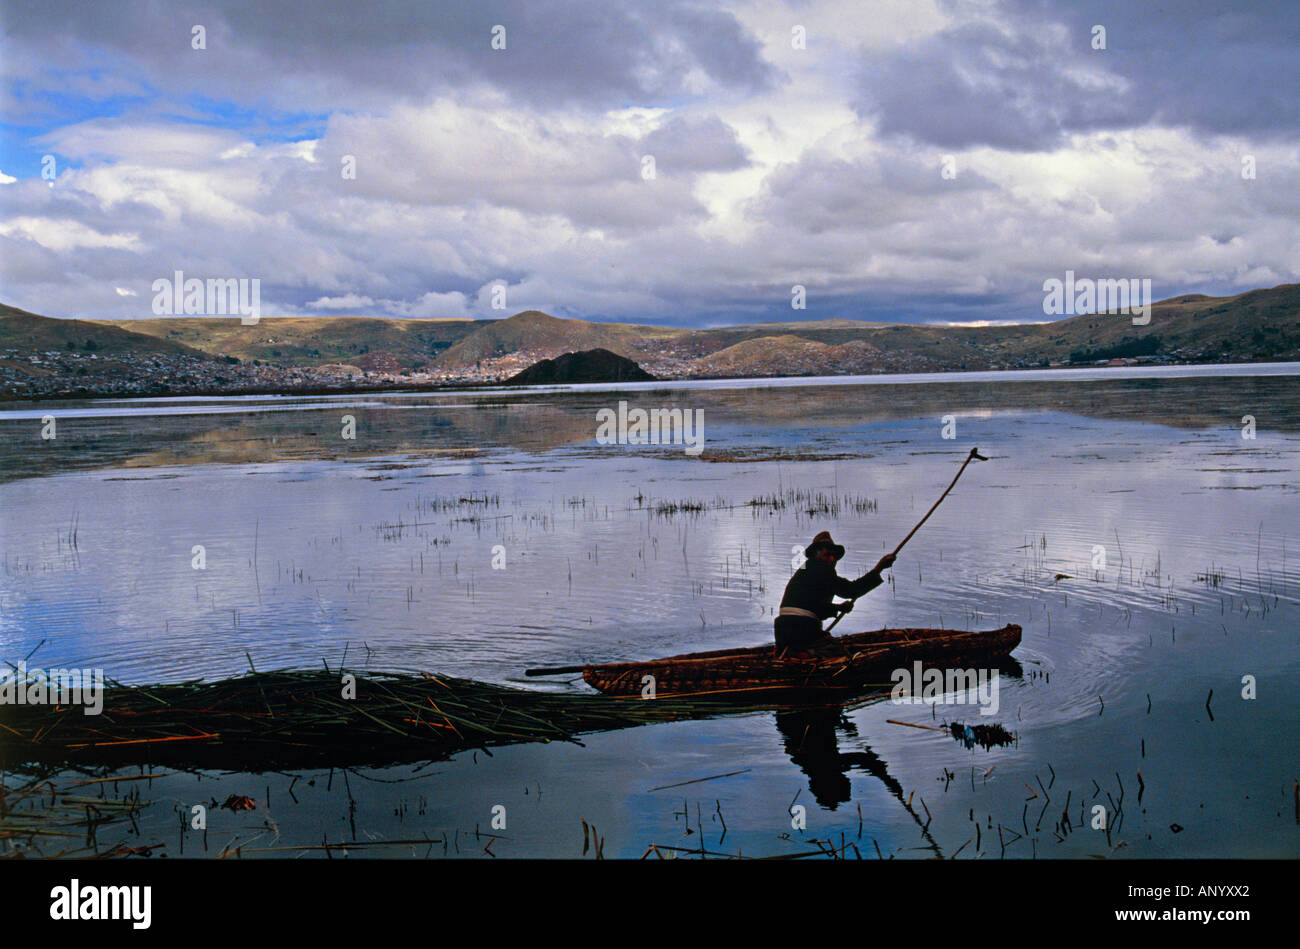 man of uros tribe riding totora reed boat at evening lake titicaca border area of peru and bolivia - Stock Image